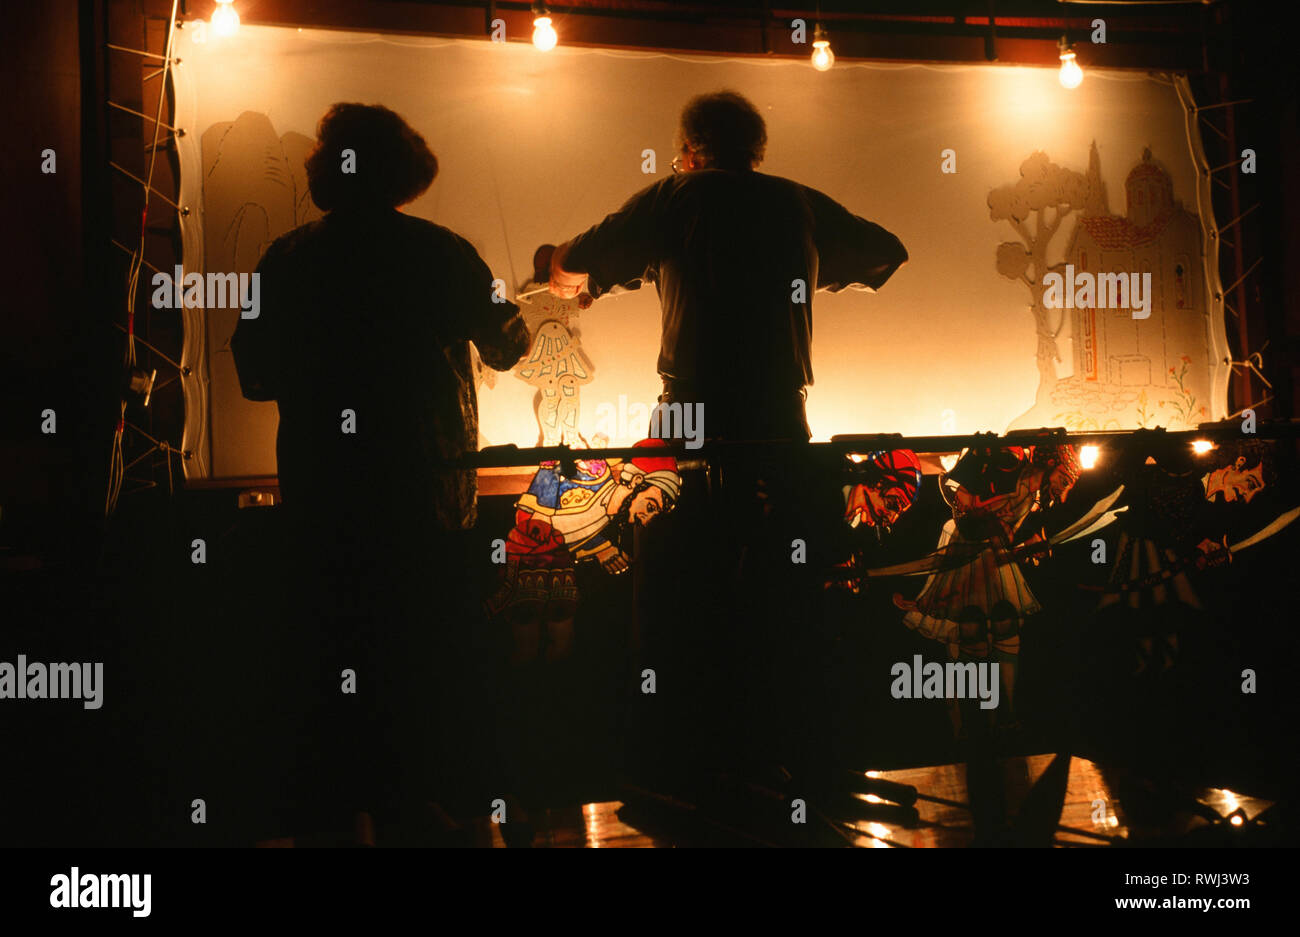 Backstage during a performance of the traditional Greek shadow puppet theatre known as Karaghiozi after its scheming, comic, central character. - Stock Image